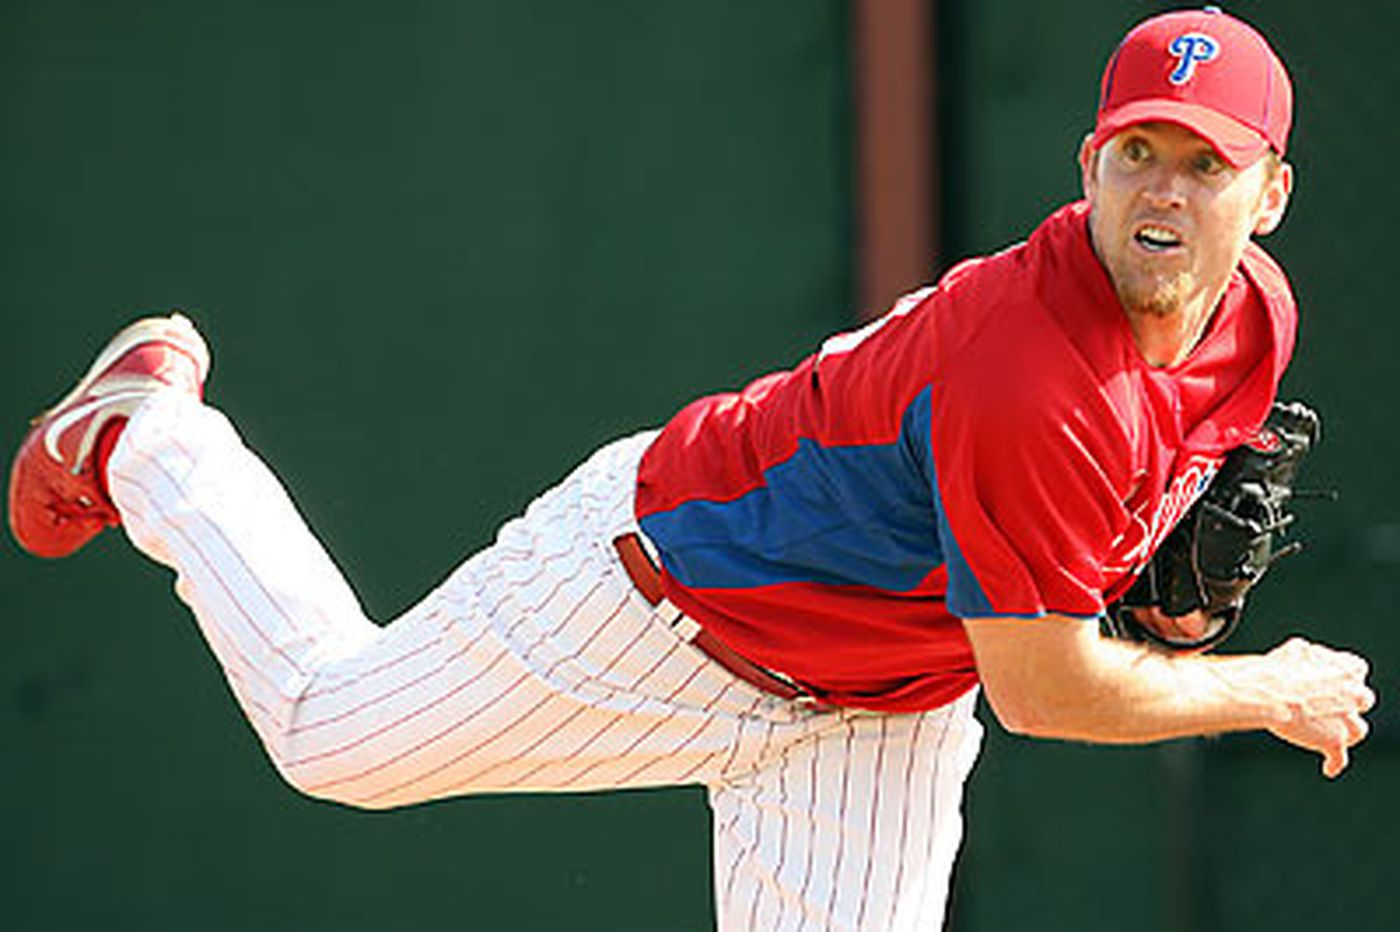 A relief for Phillies, Lidge off to healthy start